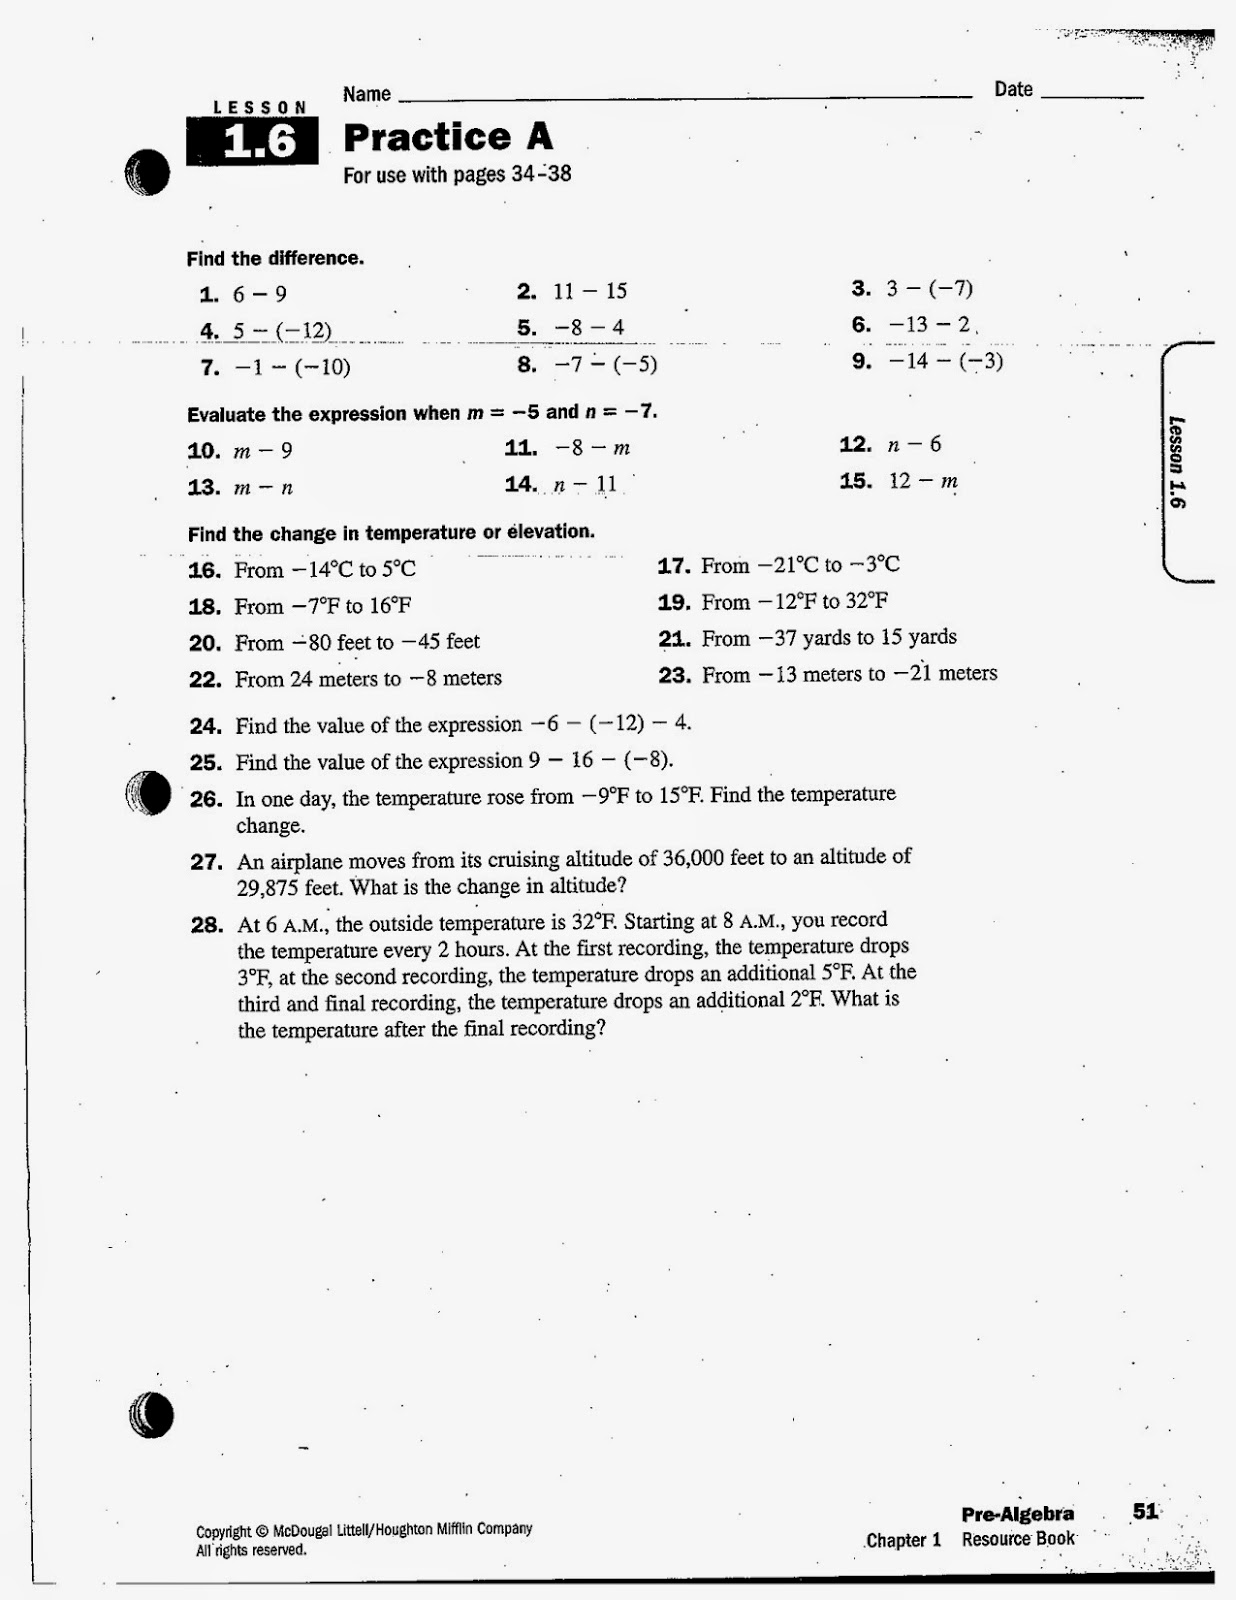 Heidemann 8th Grade Math Pre Algebra Notes And Hw For